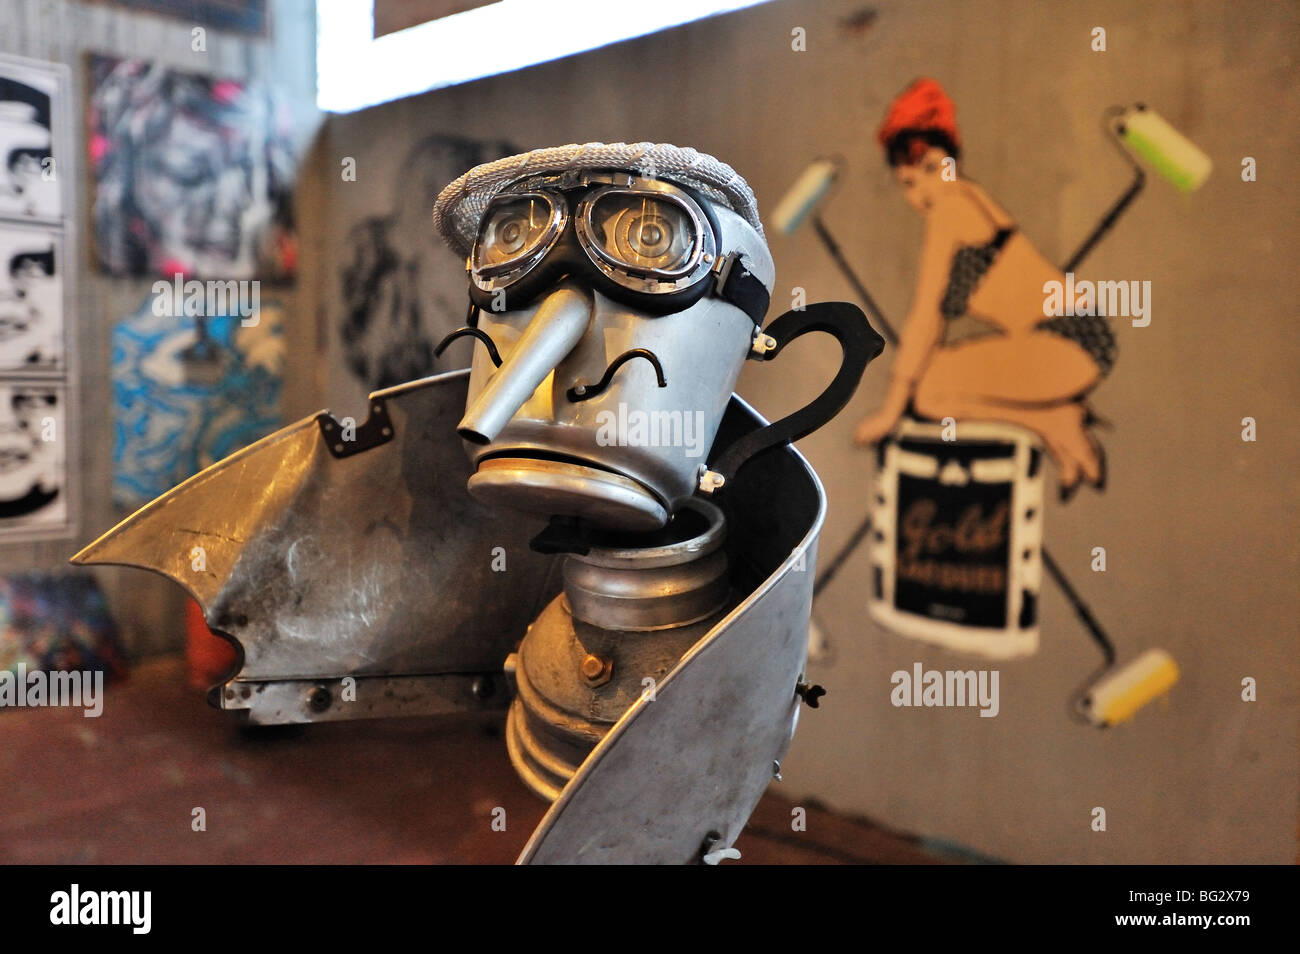 Street art from Mutoid Waste and UK's leading graffiti artists at Mutate Britain One Foot in the Grove winter - Stock Image